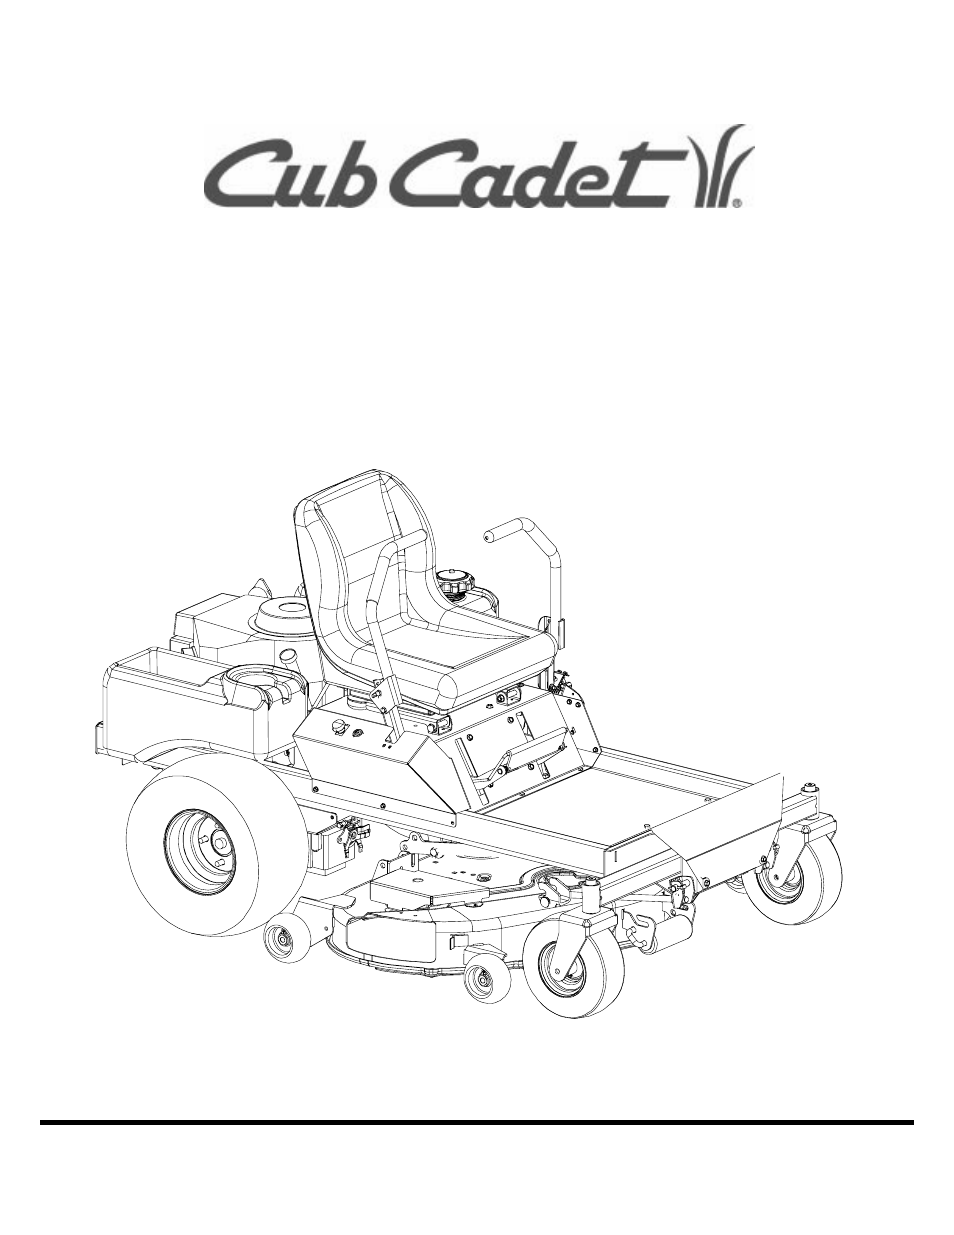 2005 Cub Cadet Zero Turn Parts Diagram Guide And Troubleshooting Mower Wiring Z Force 44 35 Images Diagrams Edmiracle Co Breakdown Tractor